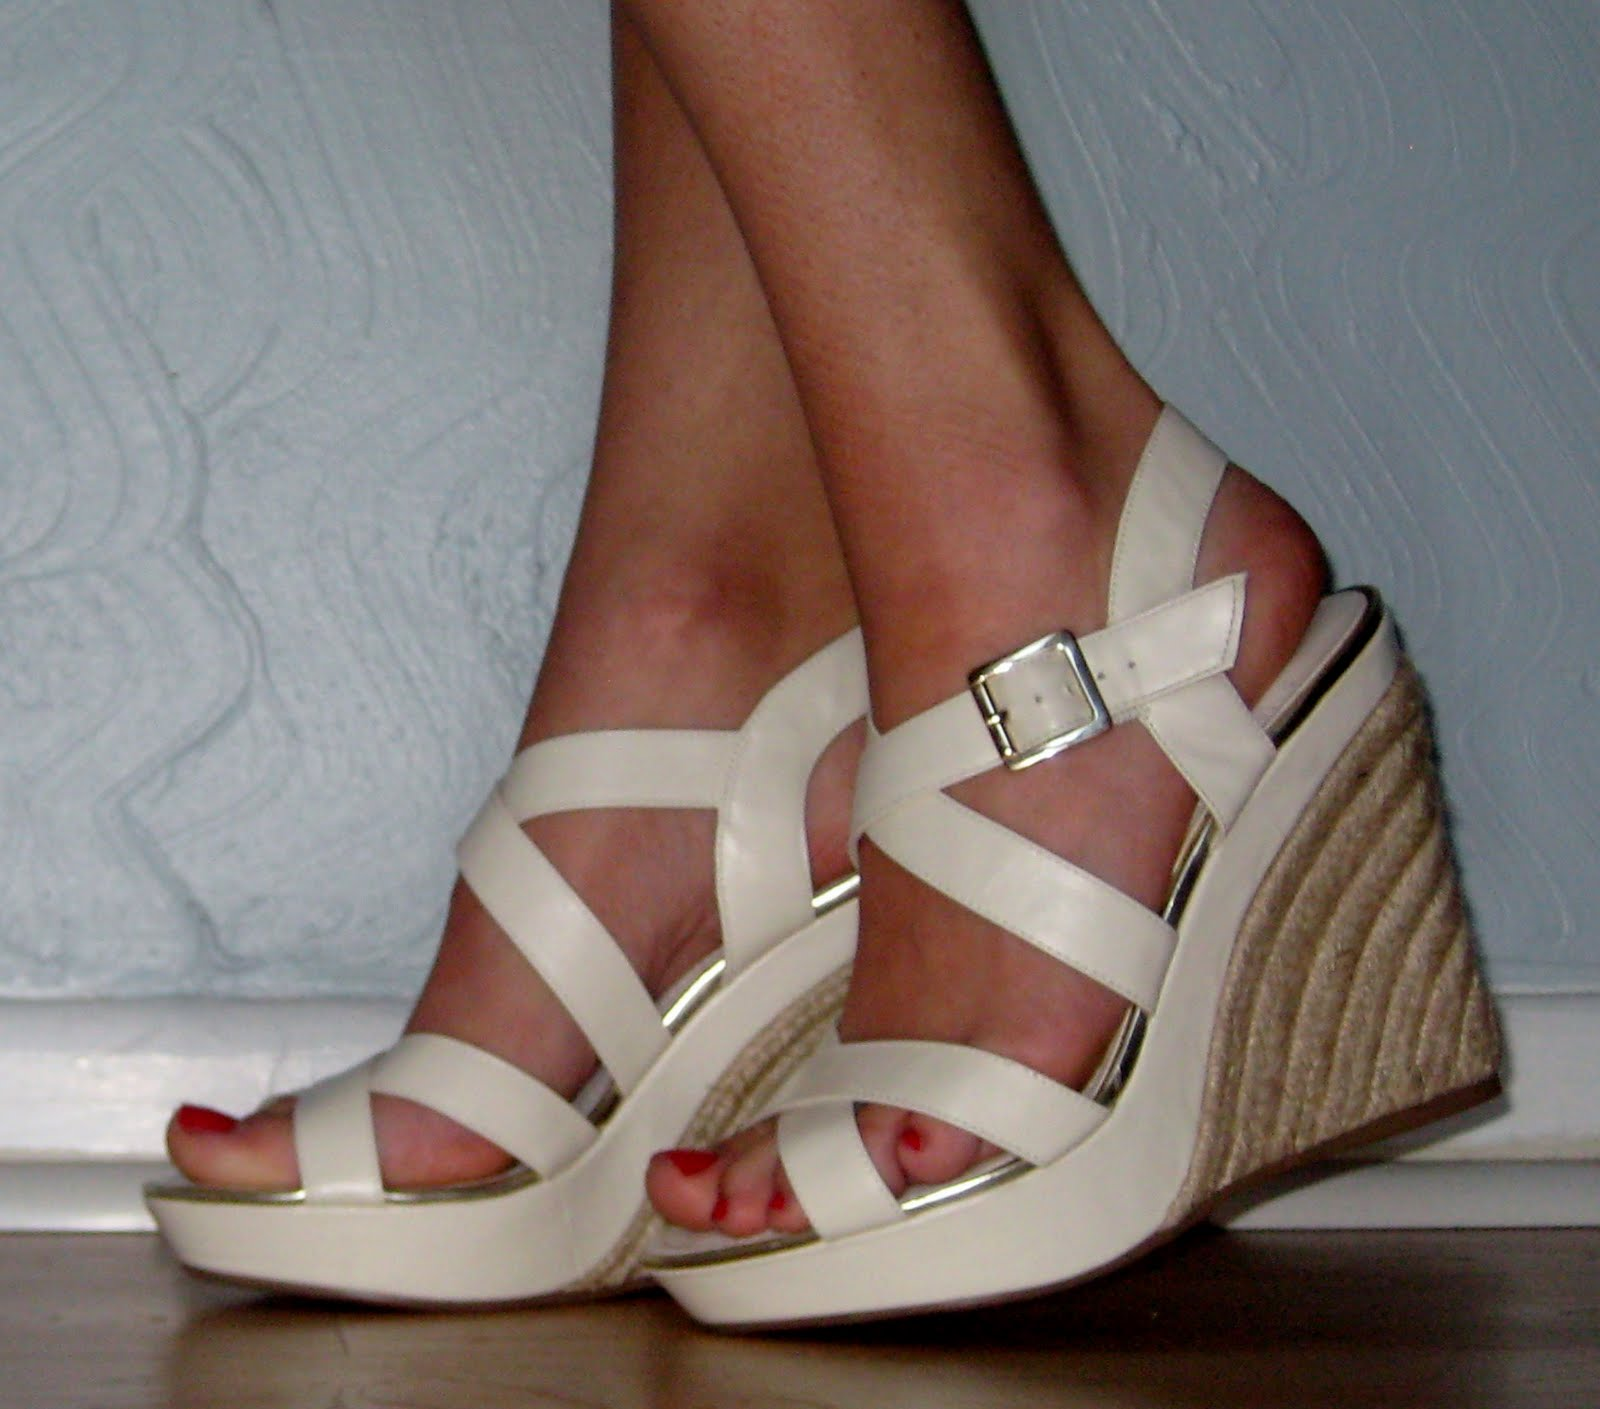 d798d217620b My first April order from Sole Society was for the Cline in cream (also  comes in brown). These platform wedges are a work of art with their  gorgeous jute ...